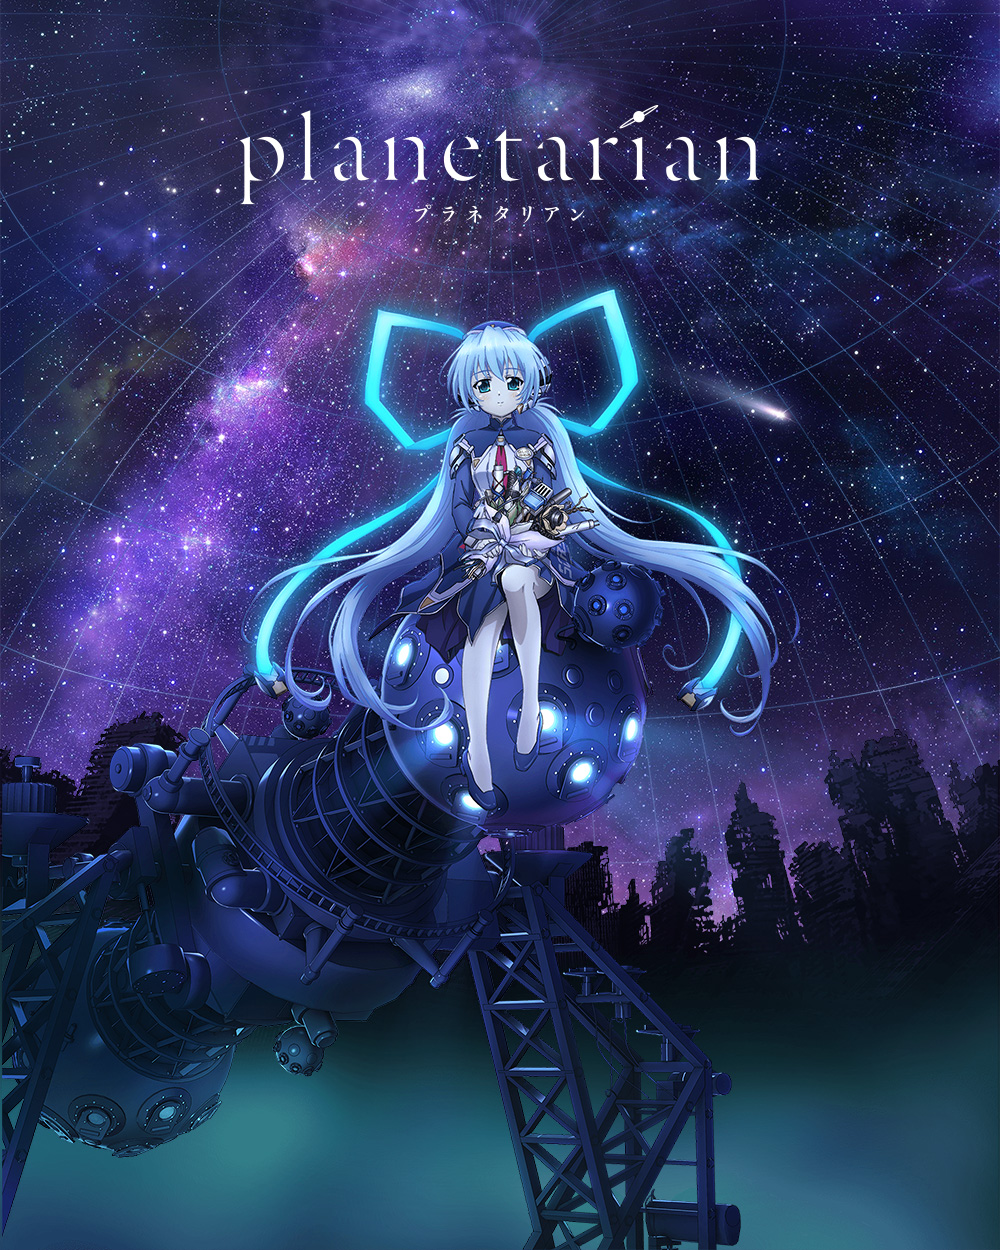 Planetarian-Anime-Visual